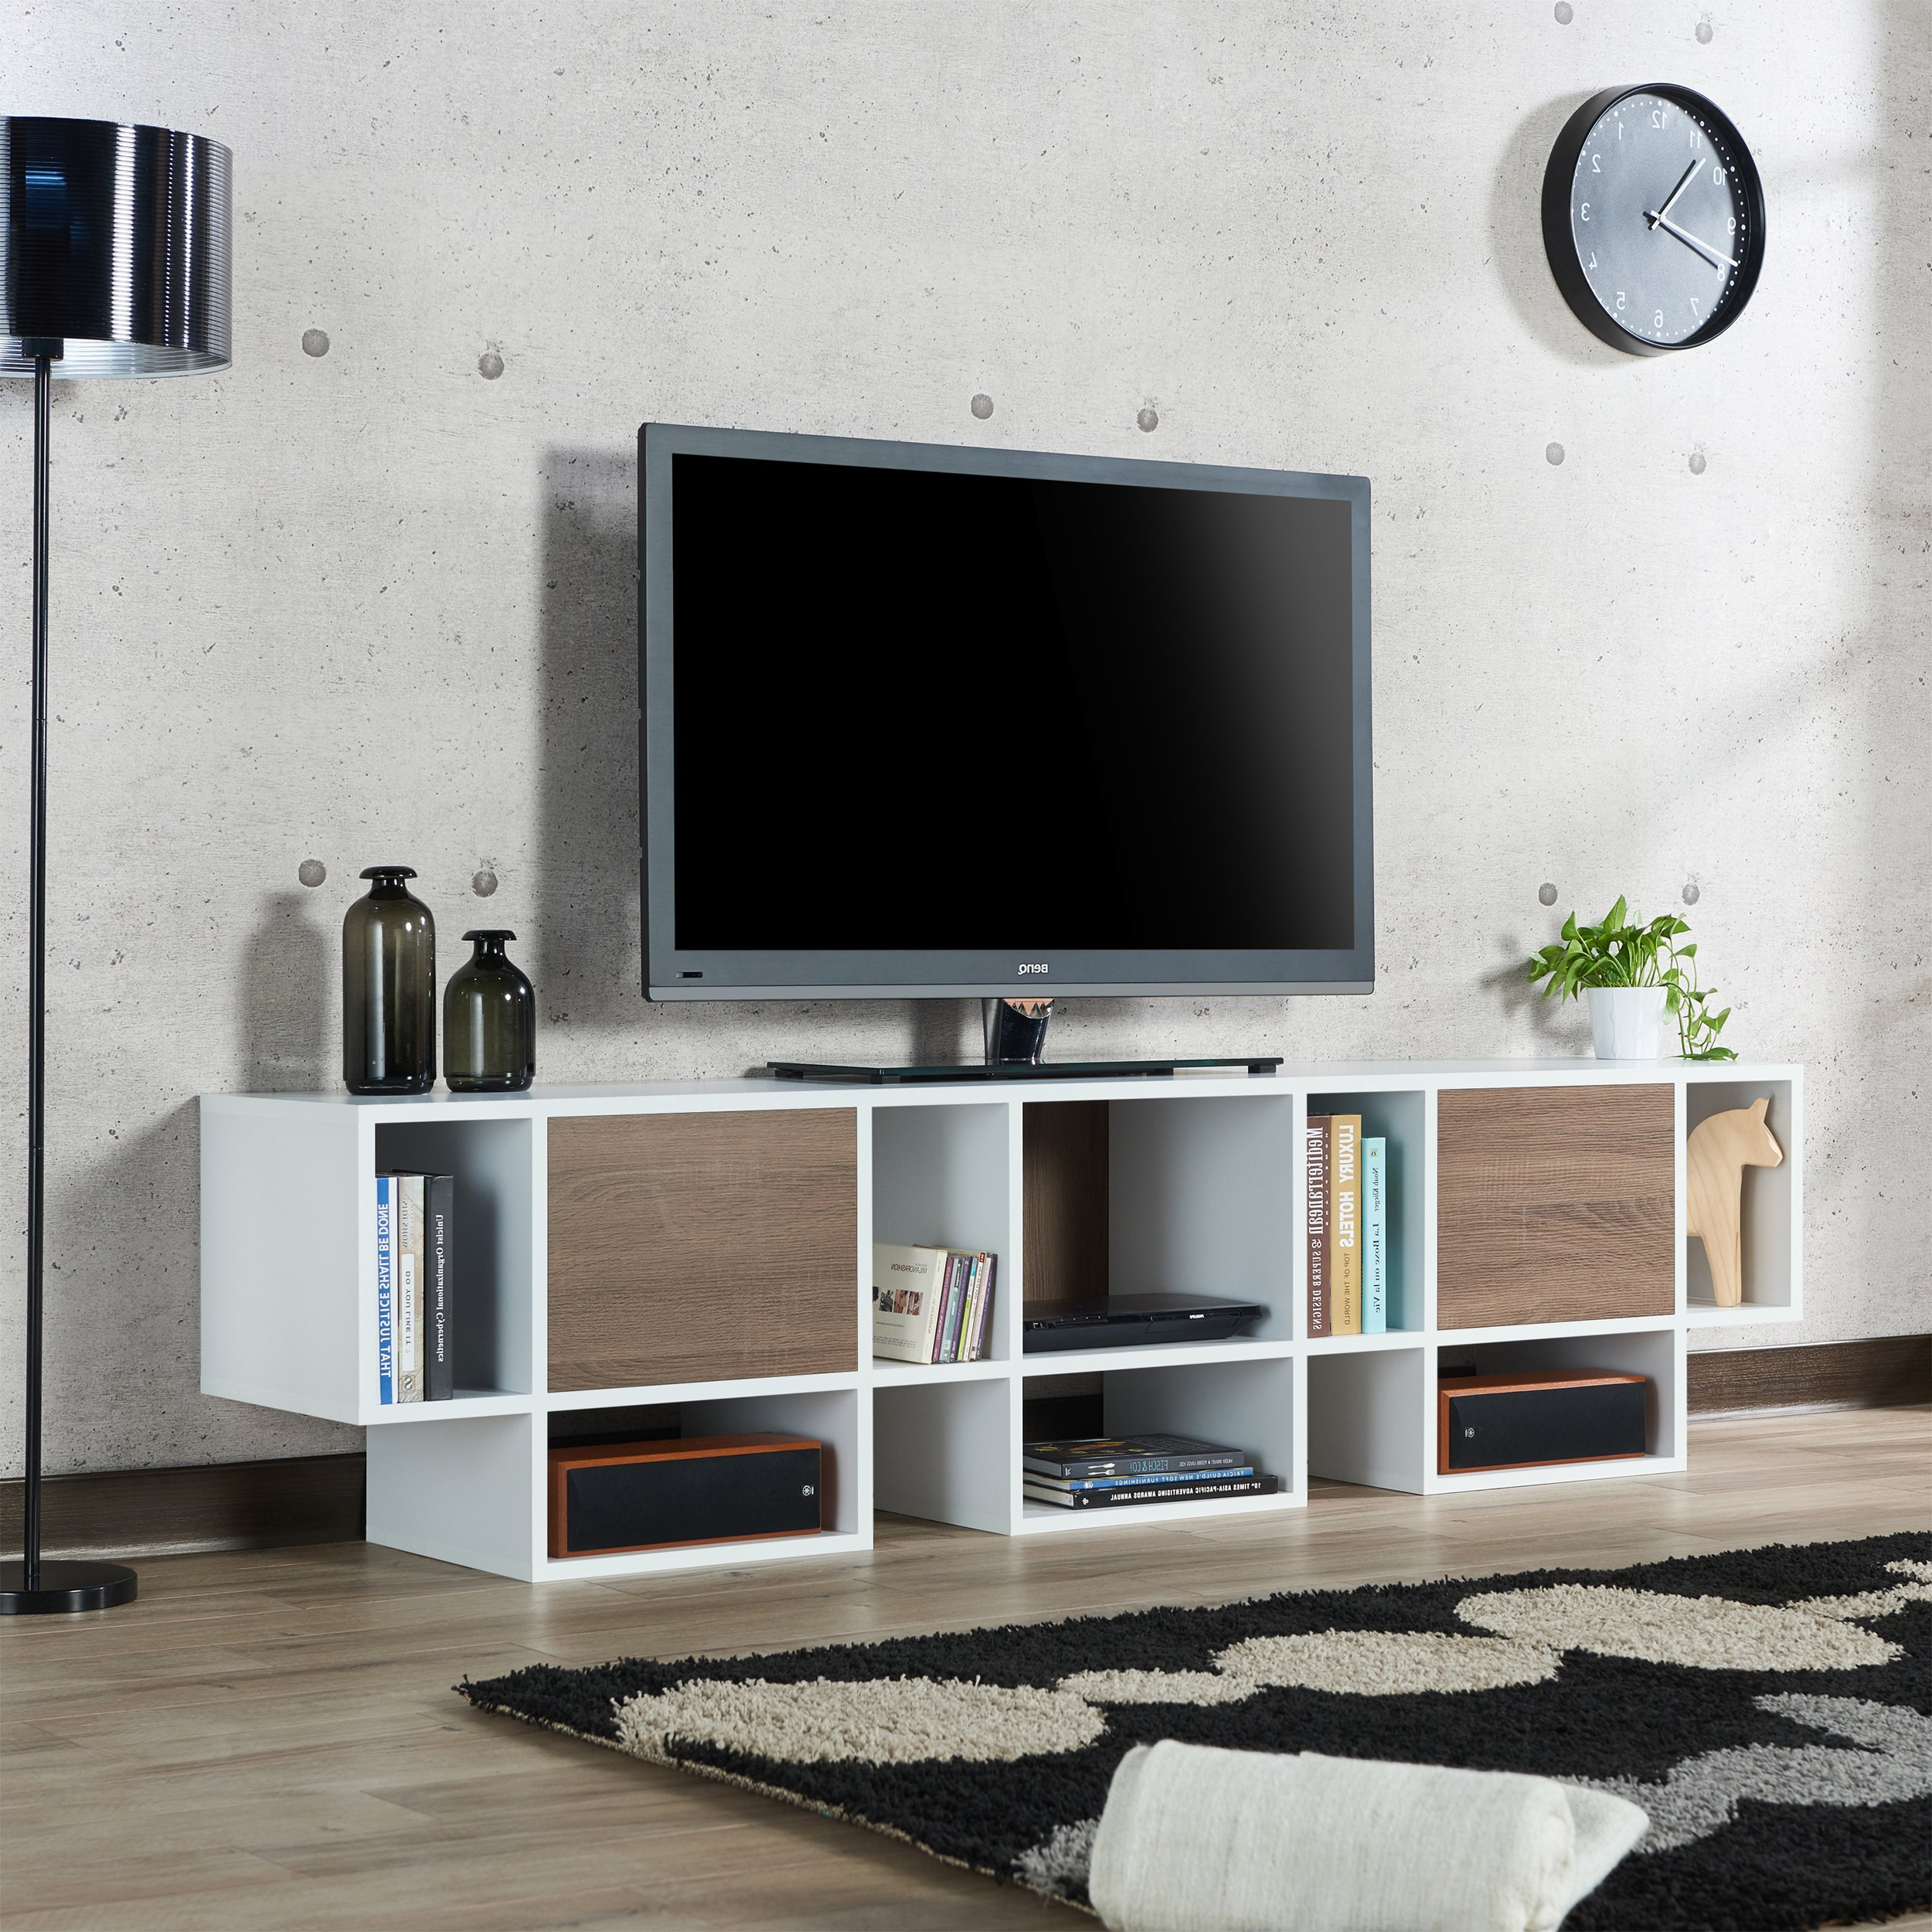 Shop Furniture Of America Veruca Contemporary Two Tone White Throughout Most Recent Noah Rustic White 66 Inch Tv Stands (View 5 of 20)